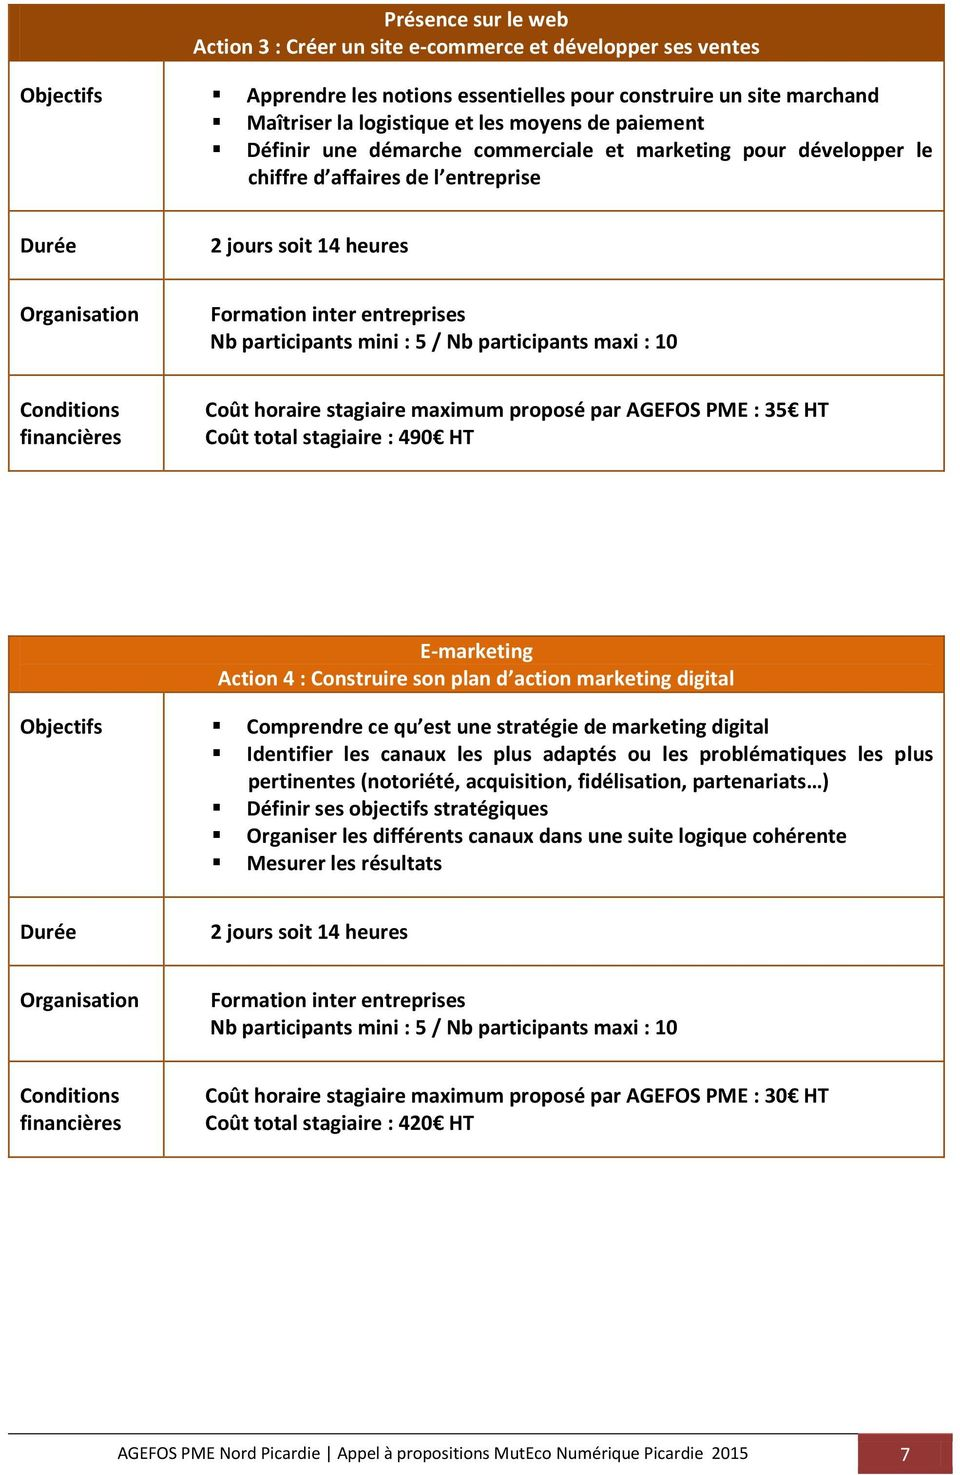 total stagiaire : 490 HT E-marketing Action 4 : Construire son plan d action marketing digital Objectifs Comprendre ce qu est une stratégie de marketing digital Identifier les canaux les plus adaptés